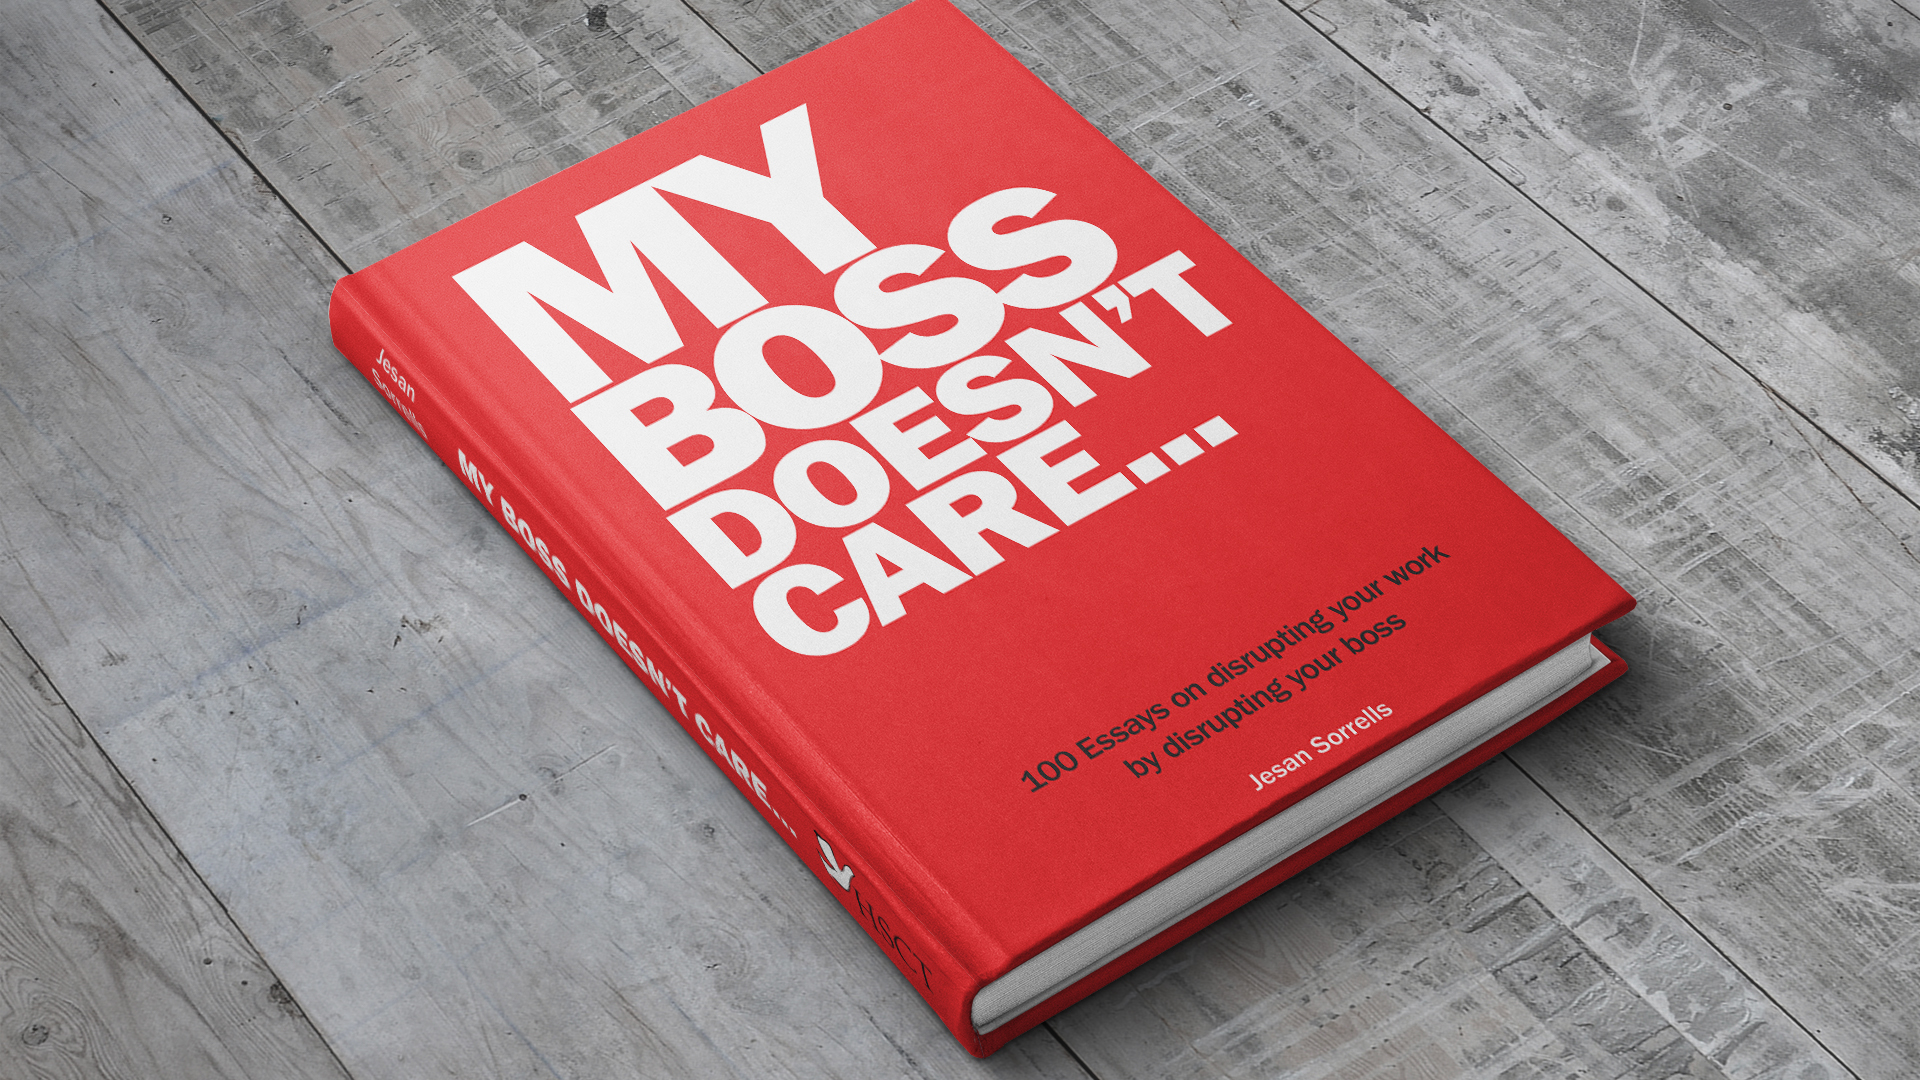 My Boss Doesn't Care - Book